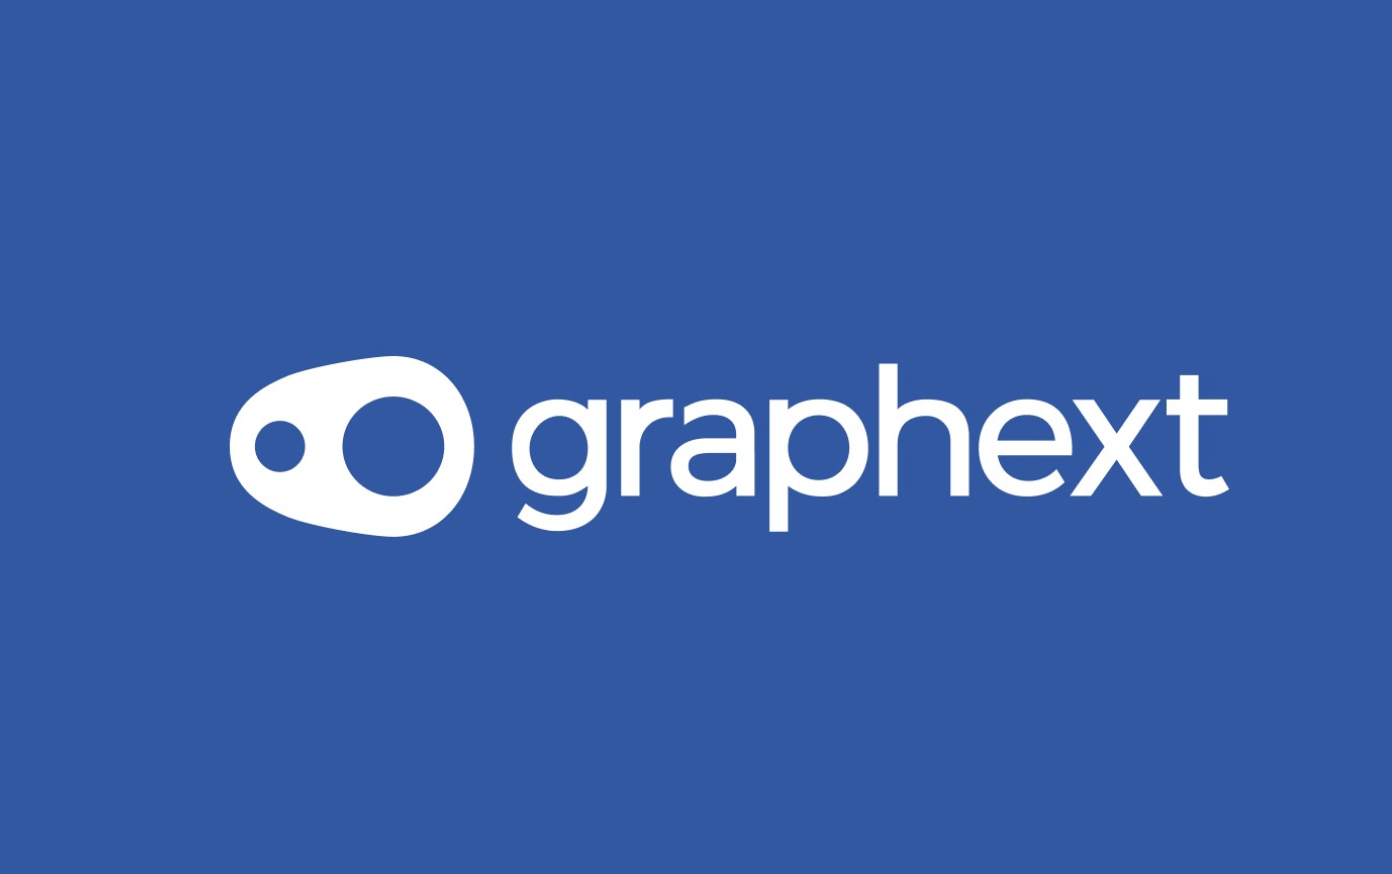 As a product evolves, the brand around it evolves too. Here we take you through the design process of finding a new logo for our business, following the experiments carried out by the Graphext design team.